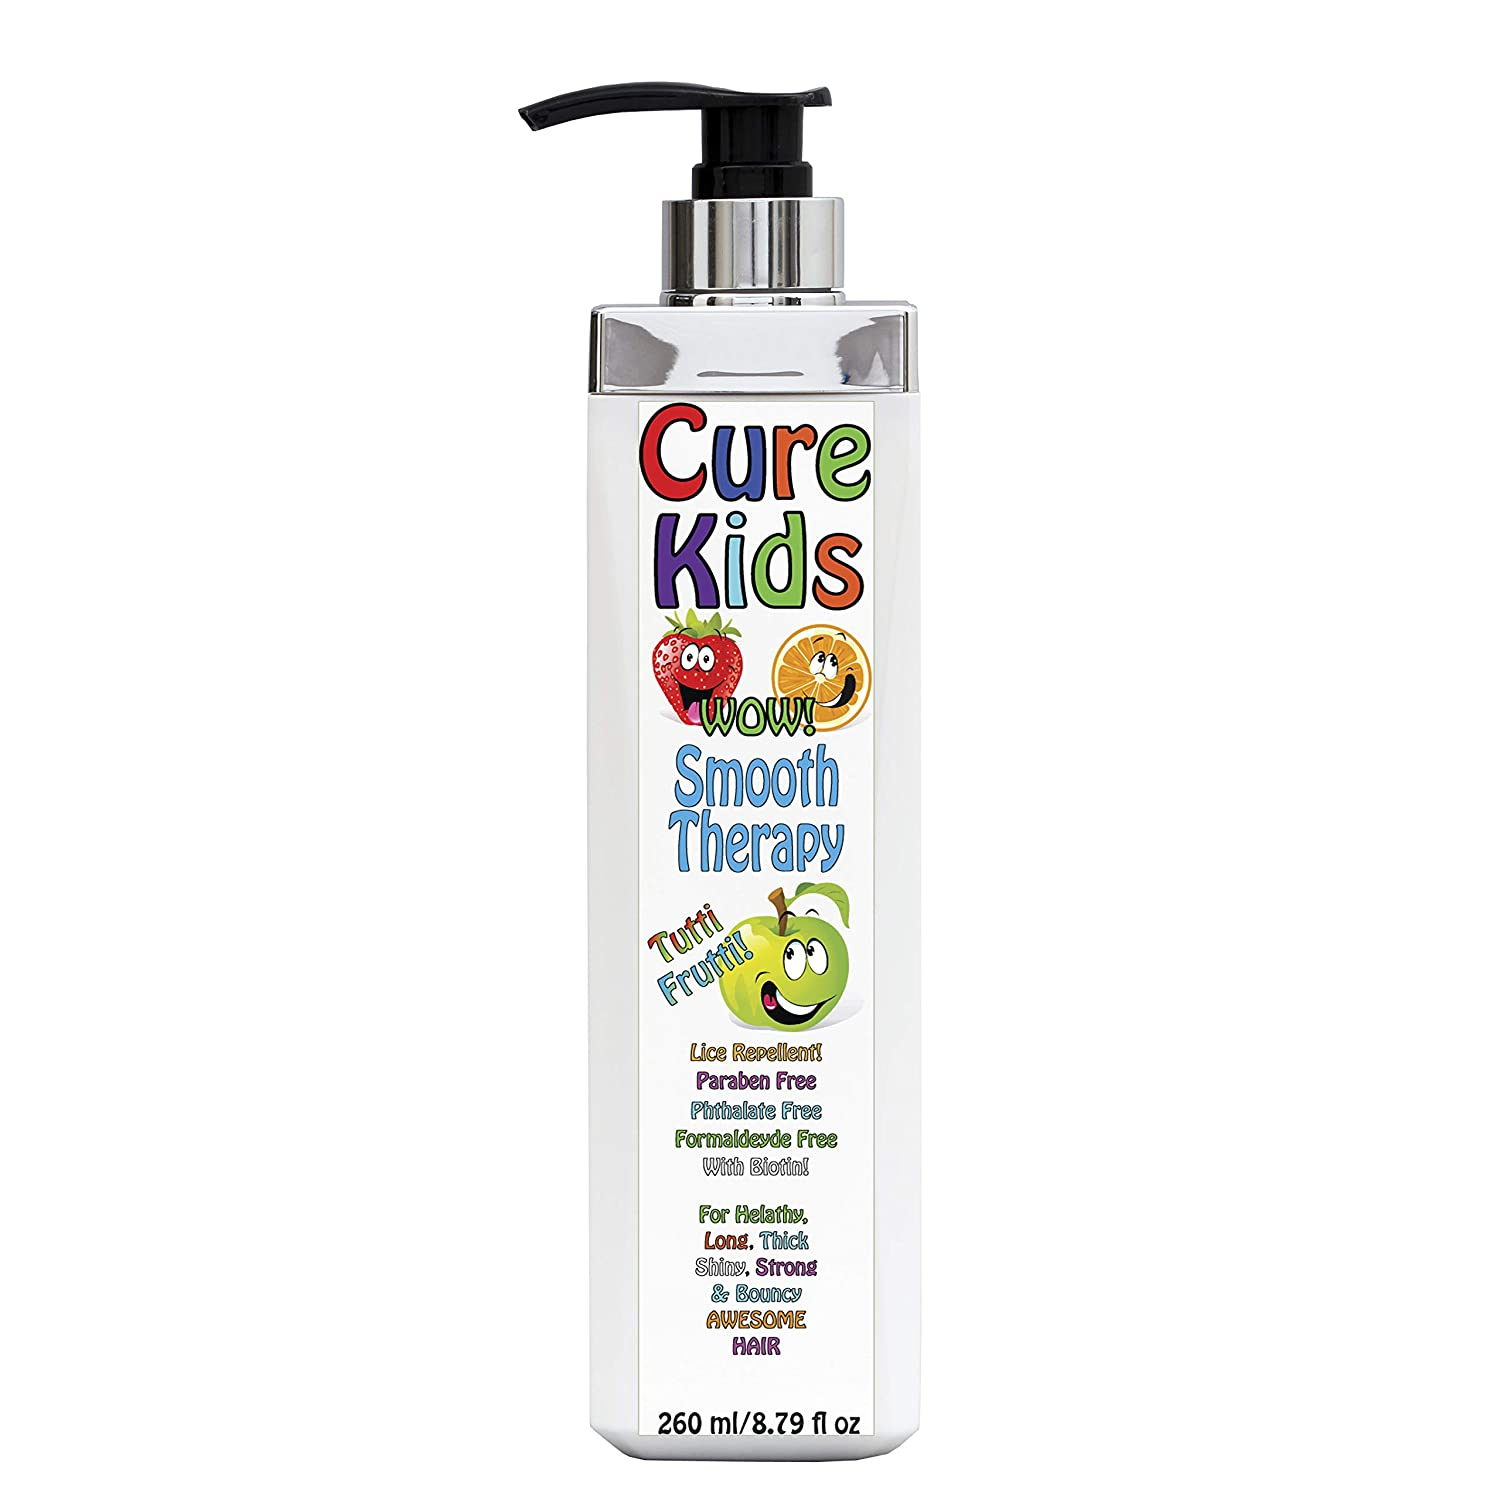 B07R694JYP Cure Kids Wow! Smooth Therapy Silky Shiny Hair Treatment for your kids. Safe, Paraben Free, Lice Repellent. Swimmers Safe for all little ones children child baby babies hair (8 fl oz) 718Vn73J2BpL._SL1500_